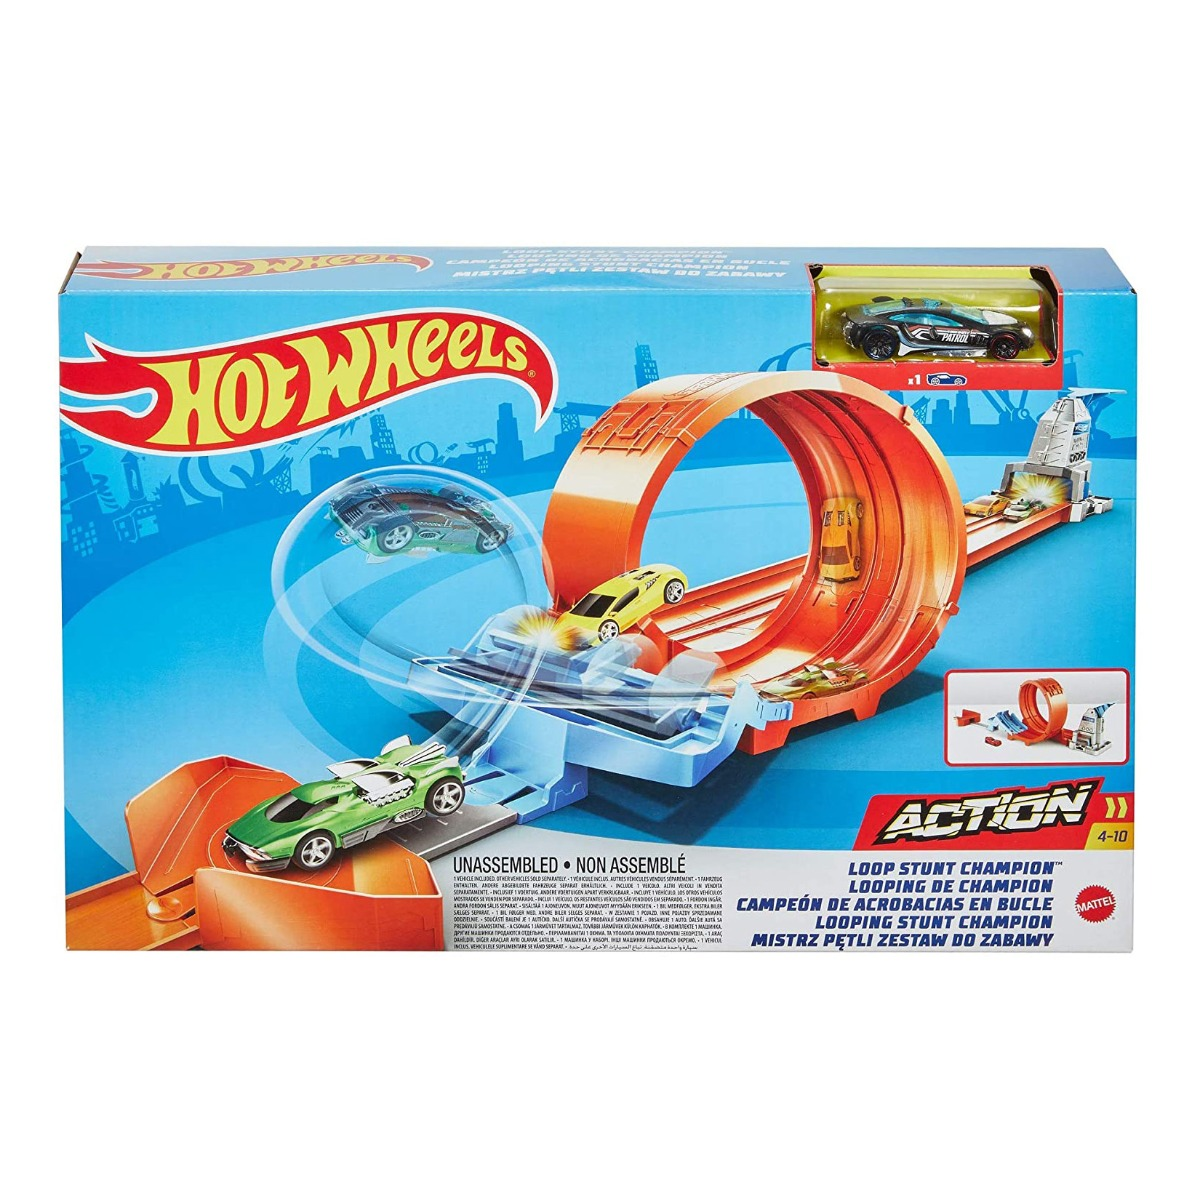 Set de joaca Circuit cu obstacole Hot Wheels, Loop Stunt Champion GTV13